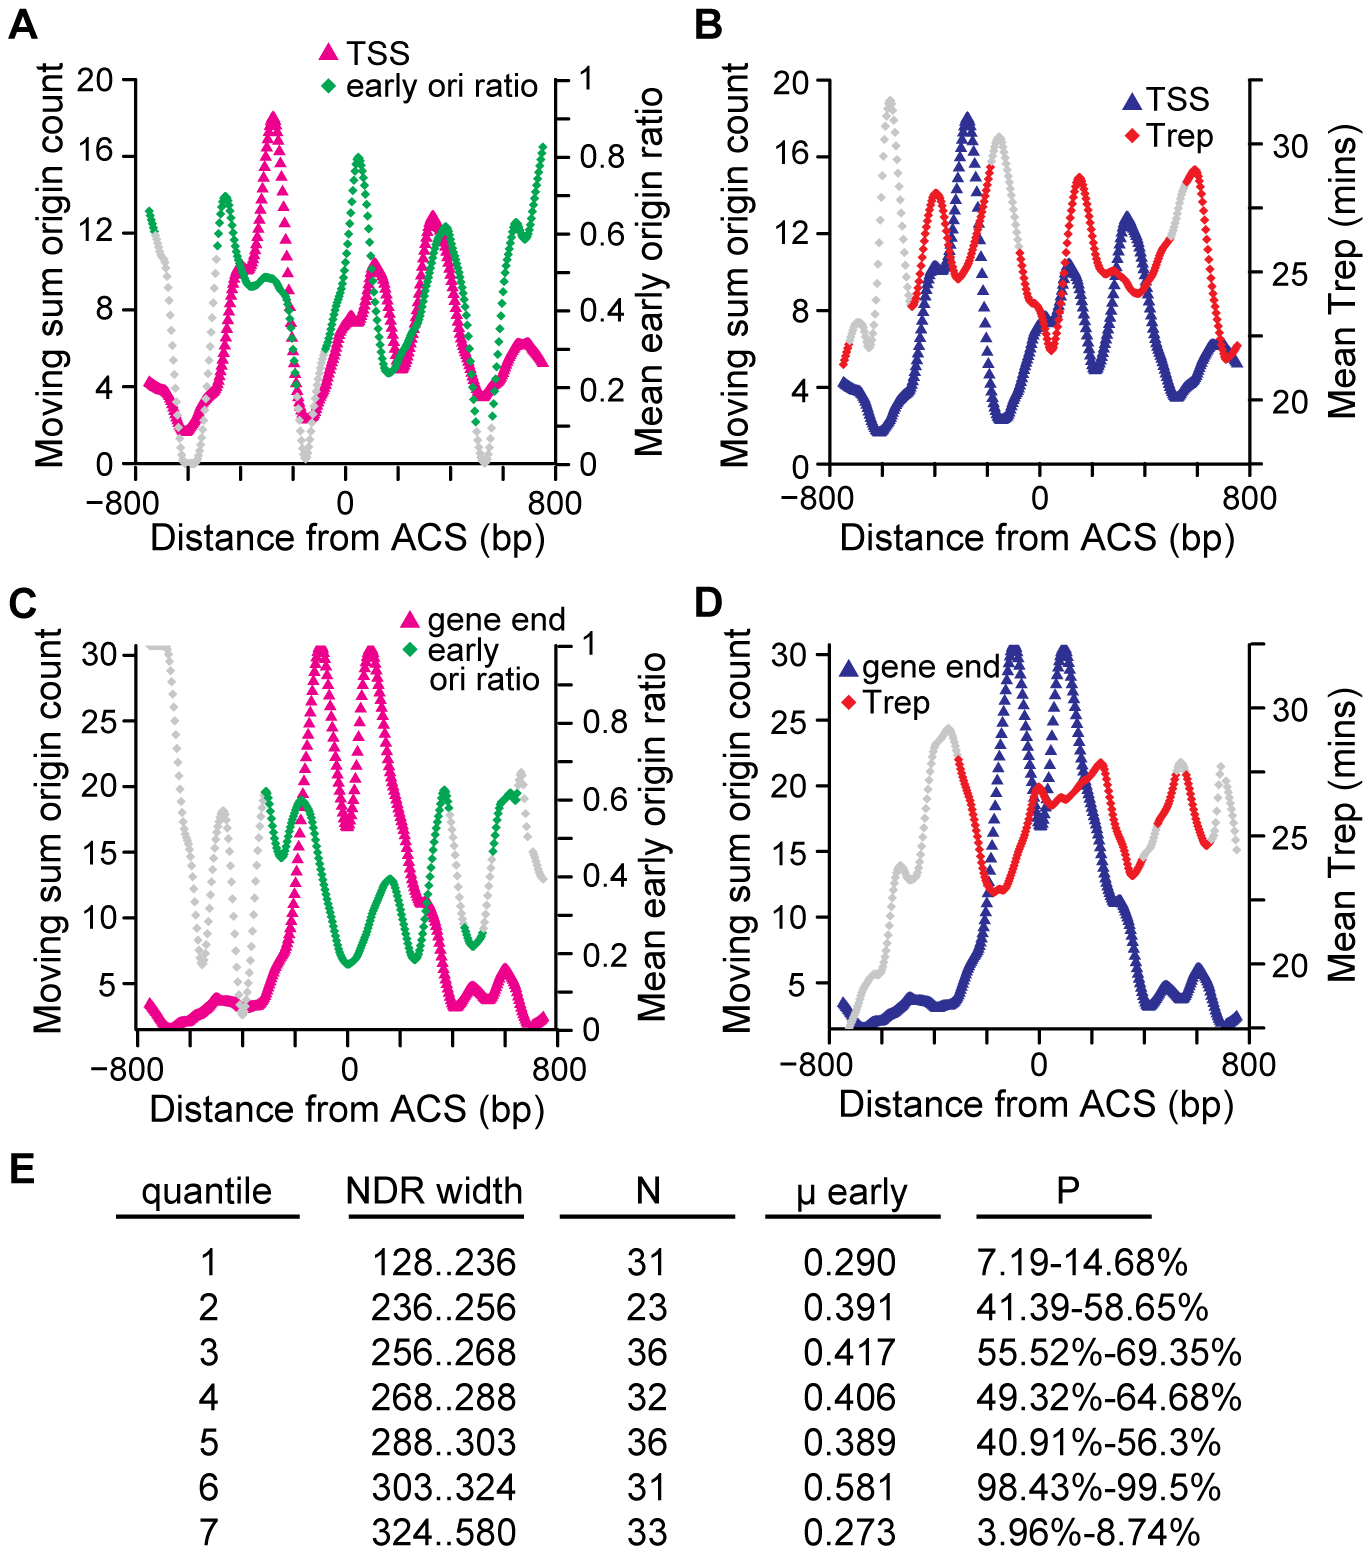 The relationship among replication timing and the locations of ACS-proximal TSSs and gene ends, and NDR widths.